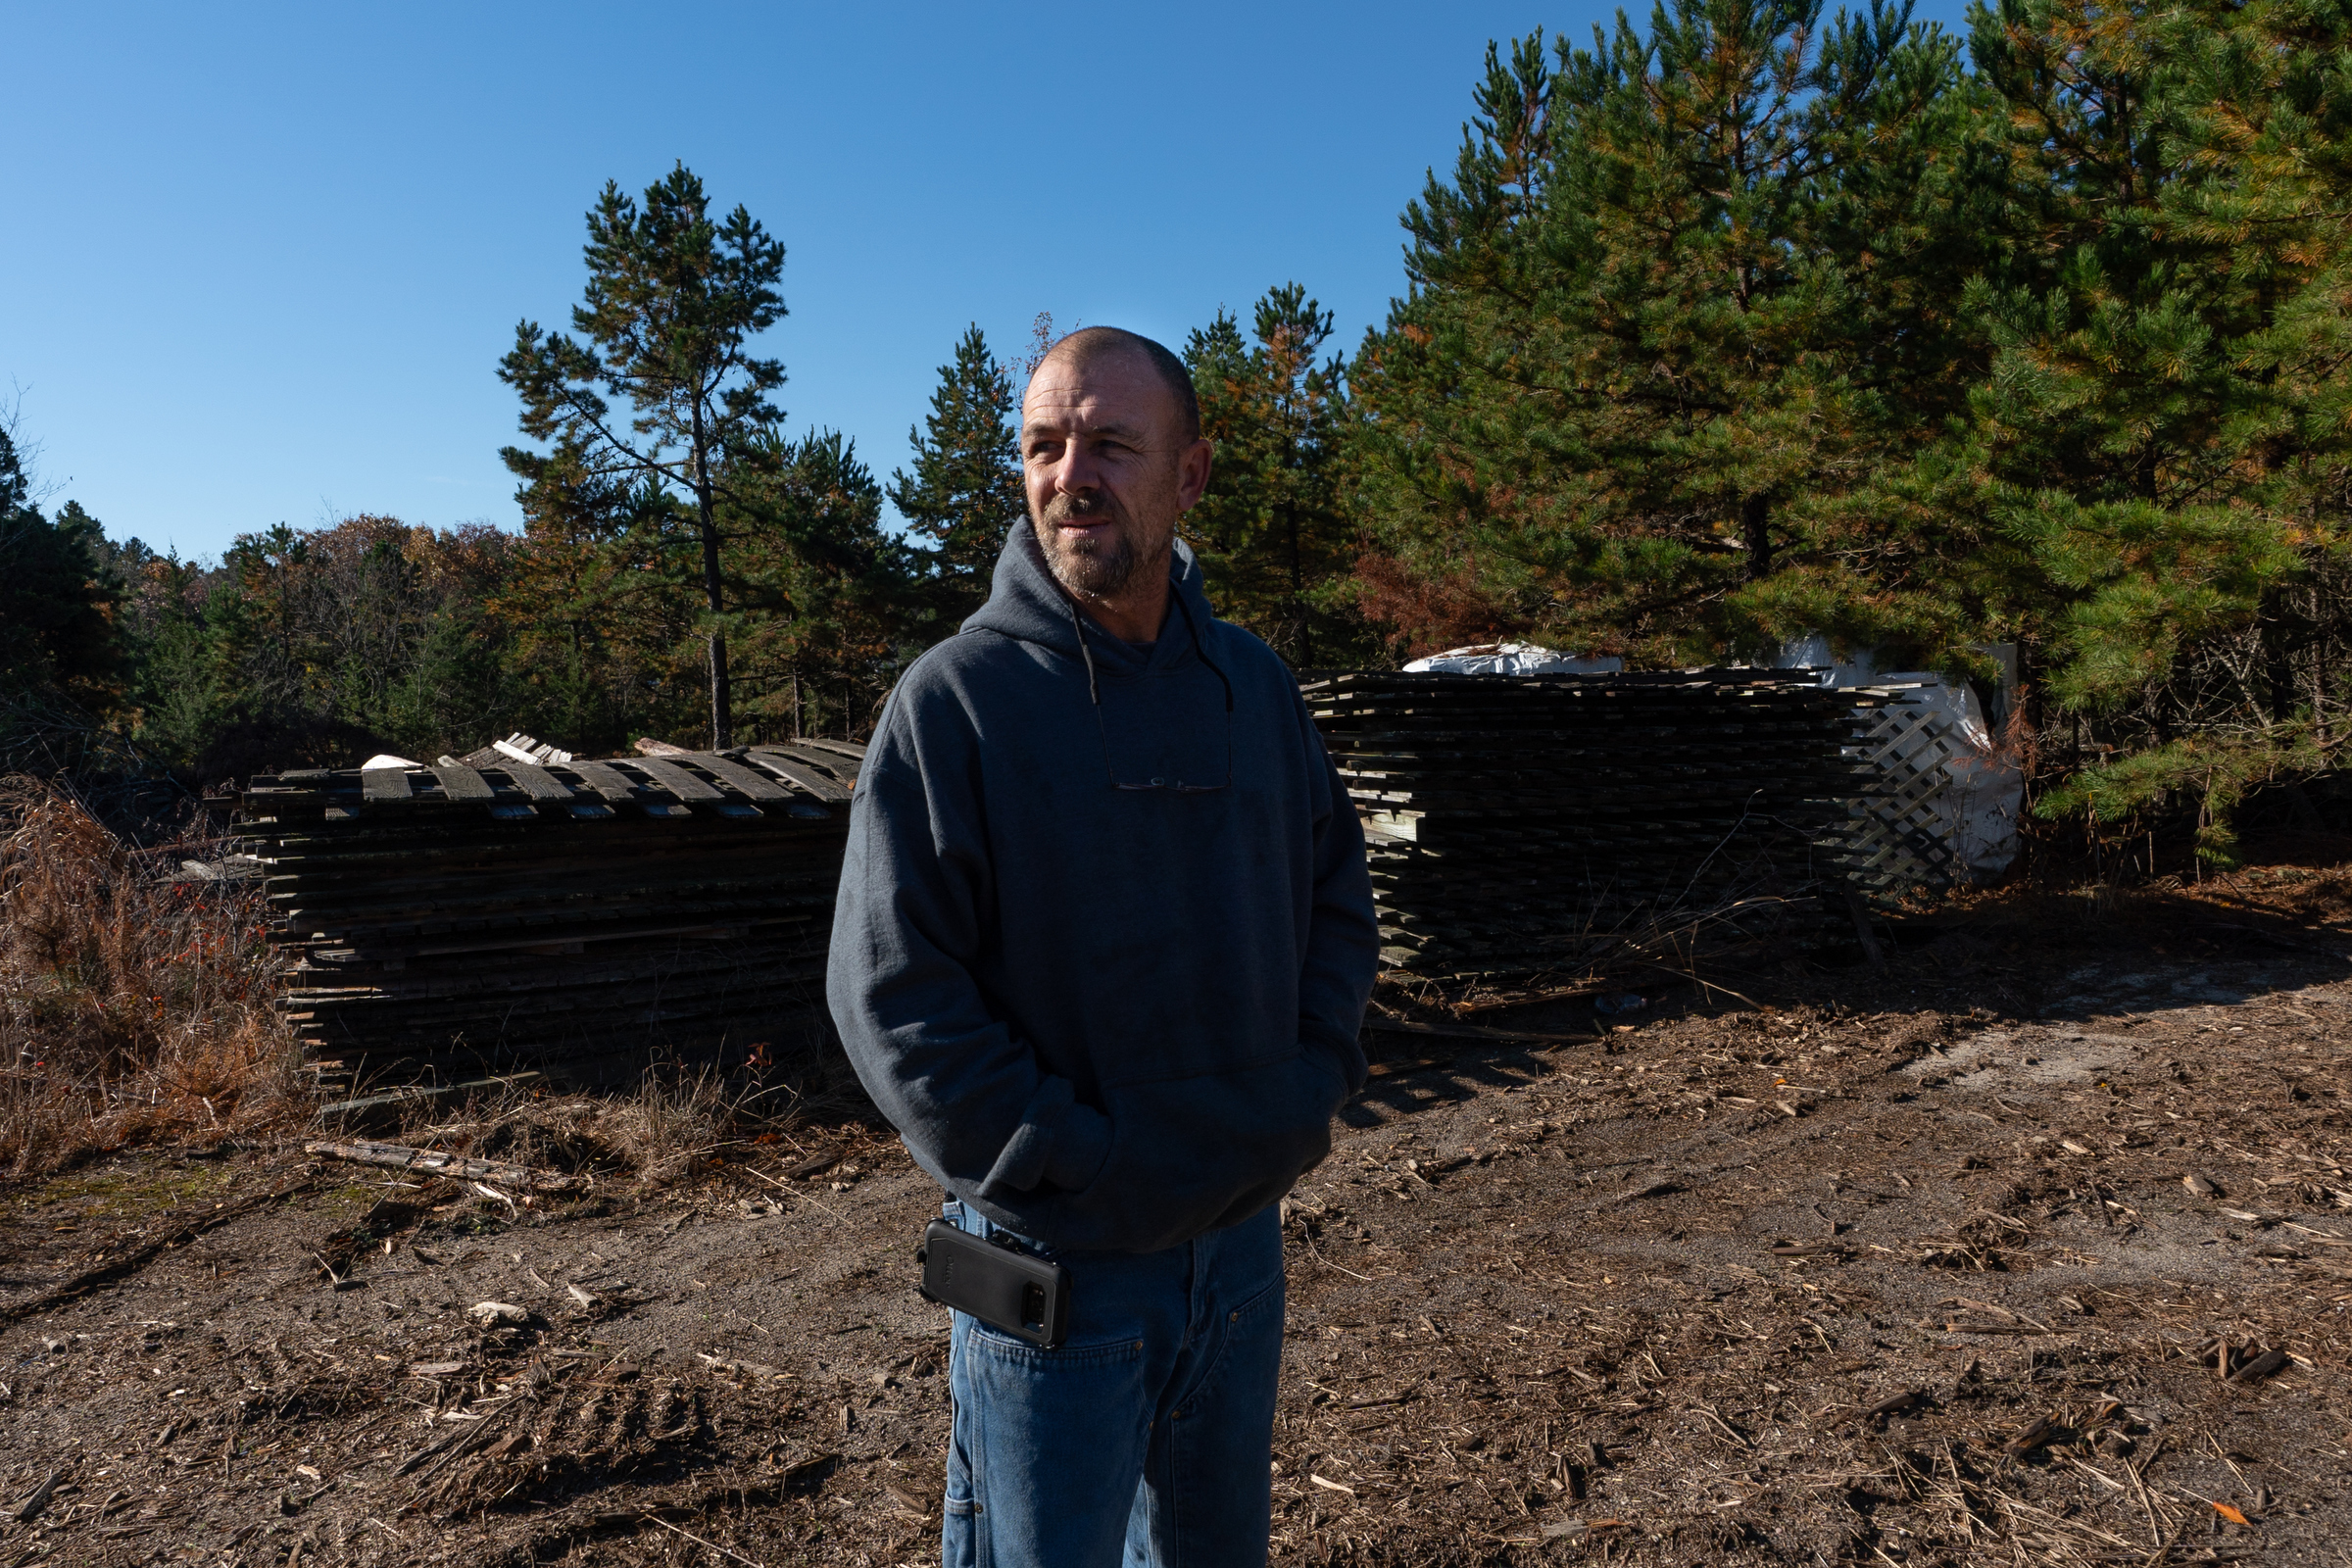 Colin McLaughlin walks the grounds near where the new lumber mill will be, in Hammonton, New Jersey, November 7, 2018. JESSICA GRIFFIN / Staff Photographer.